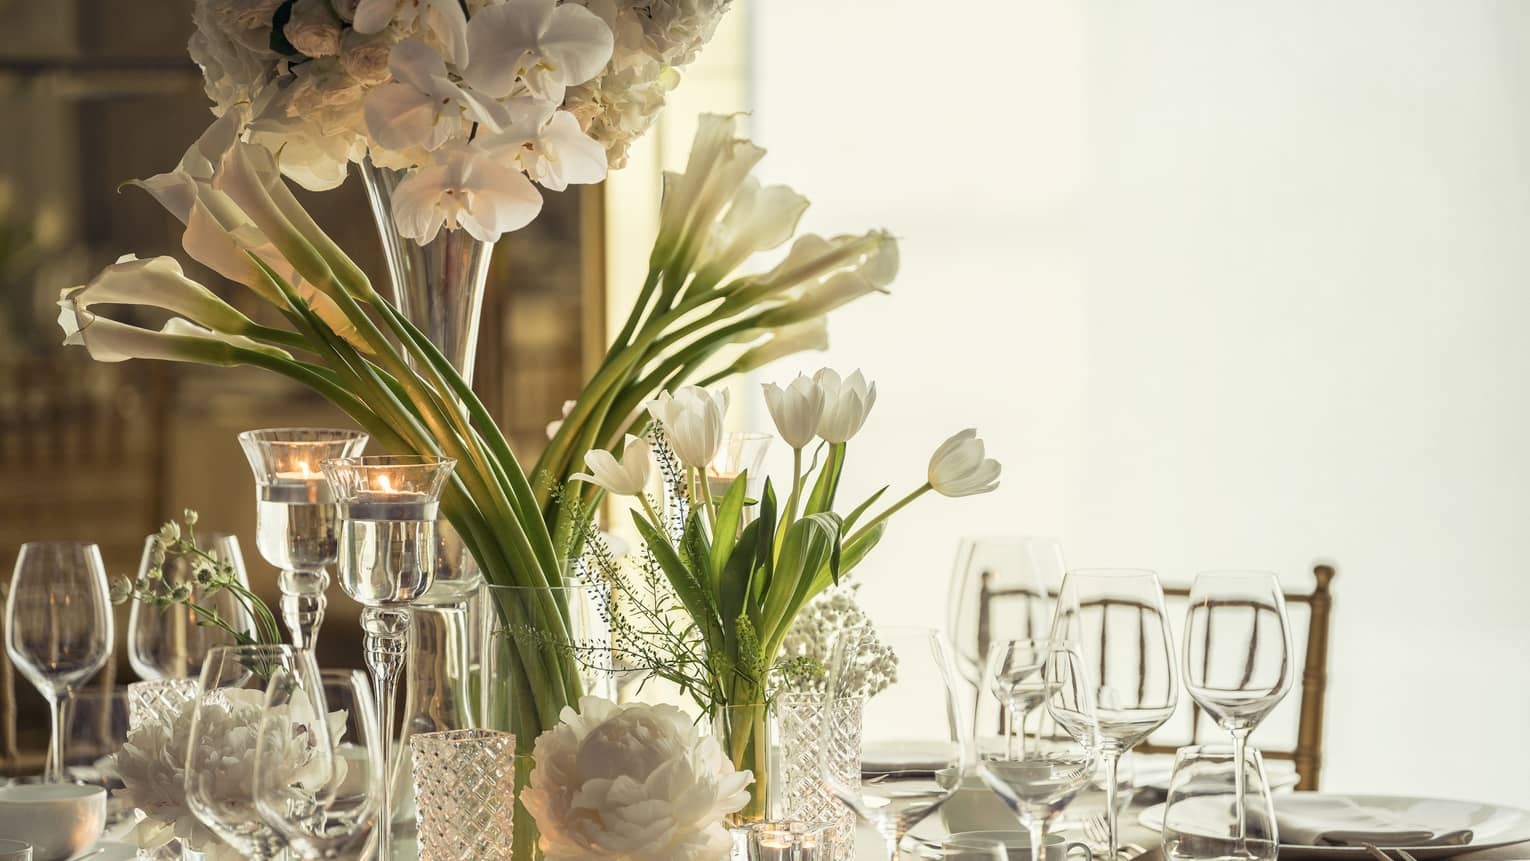 Western Banquet room dining table with glassware, long stemmed white flowers in vase